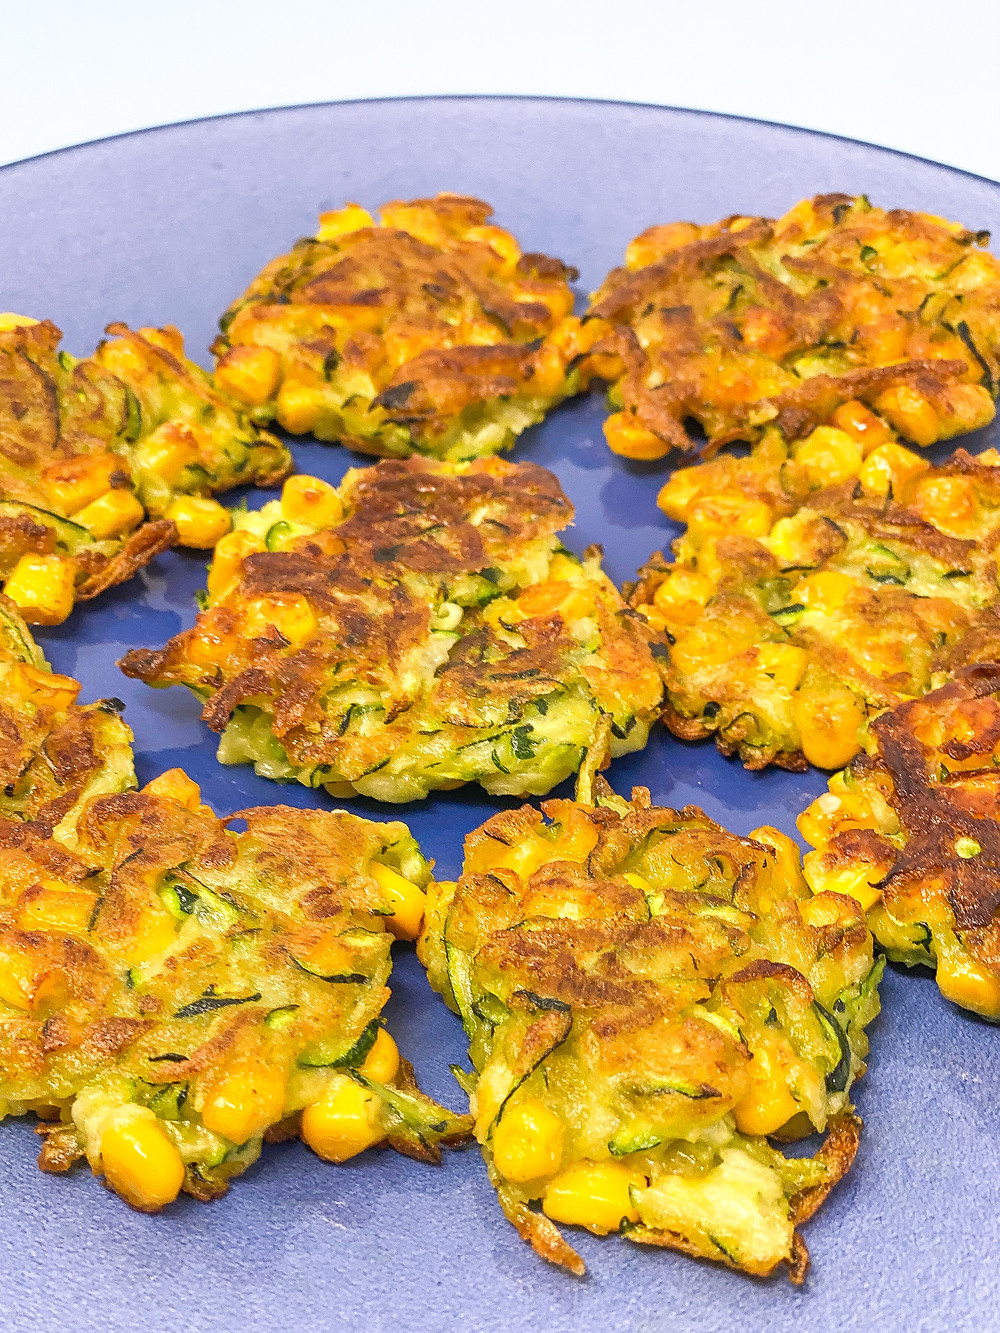 COURGETTE SWEETCORN FRITTERS on the plate